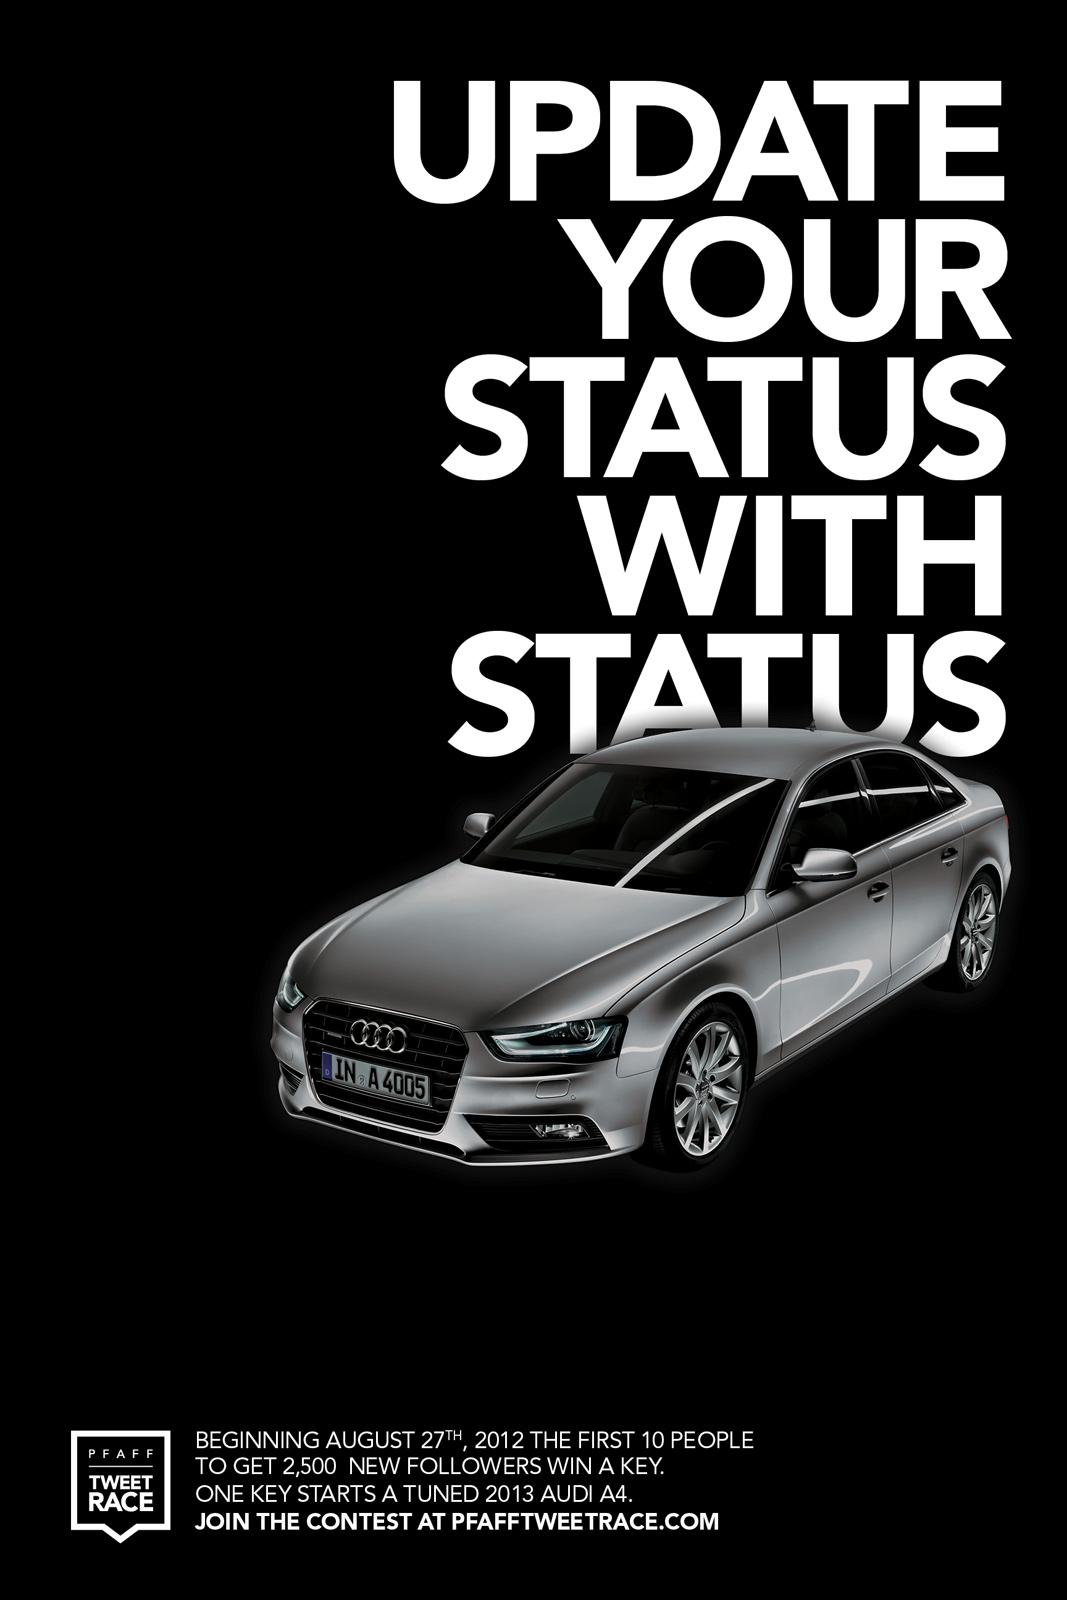 Audi Outdoor Ad -  Update your status with status